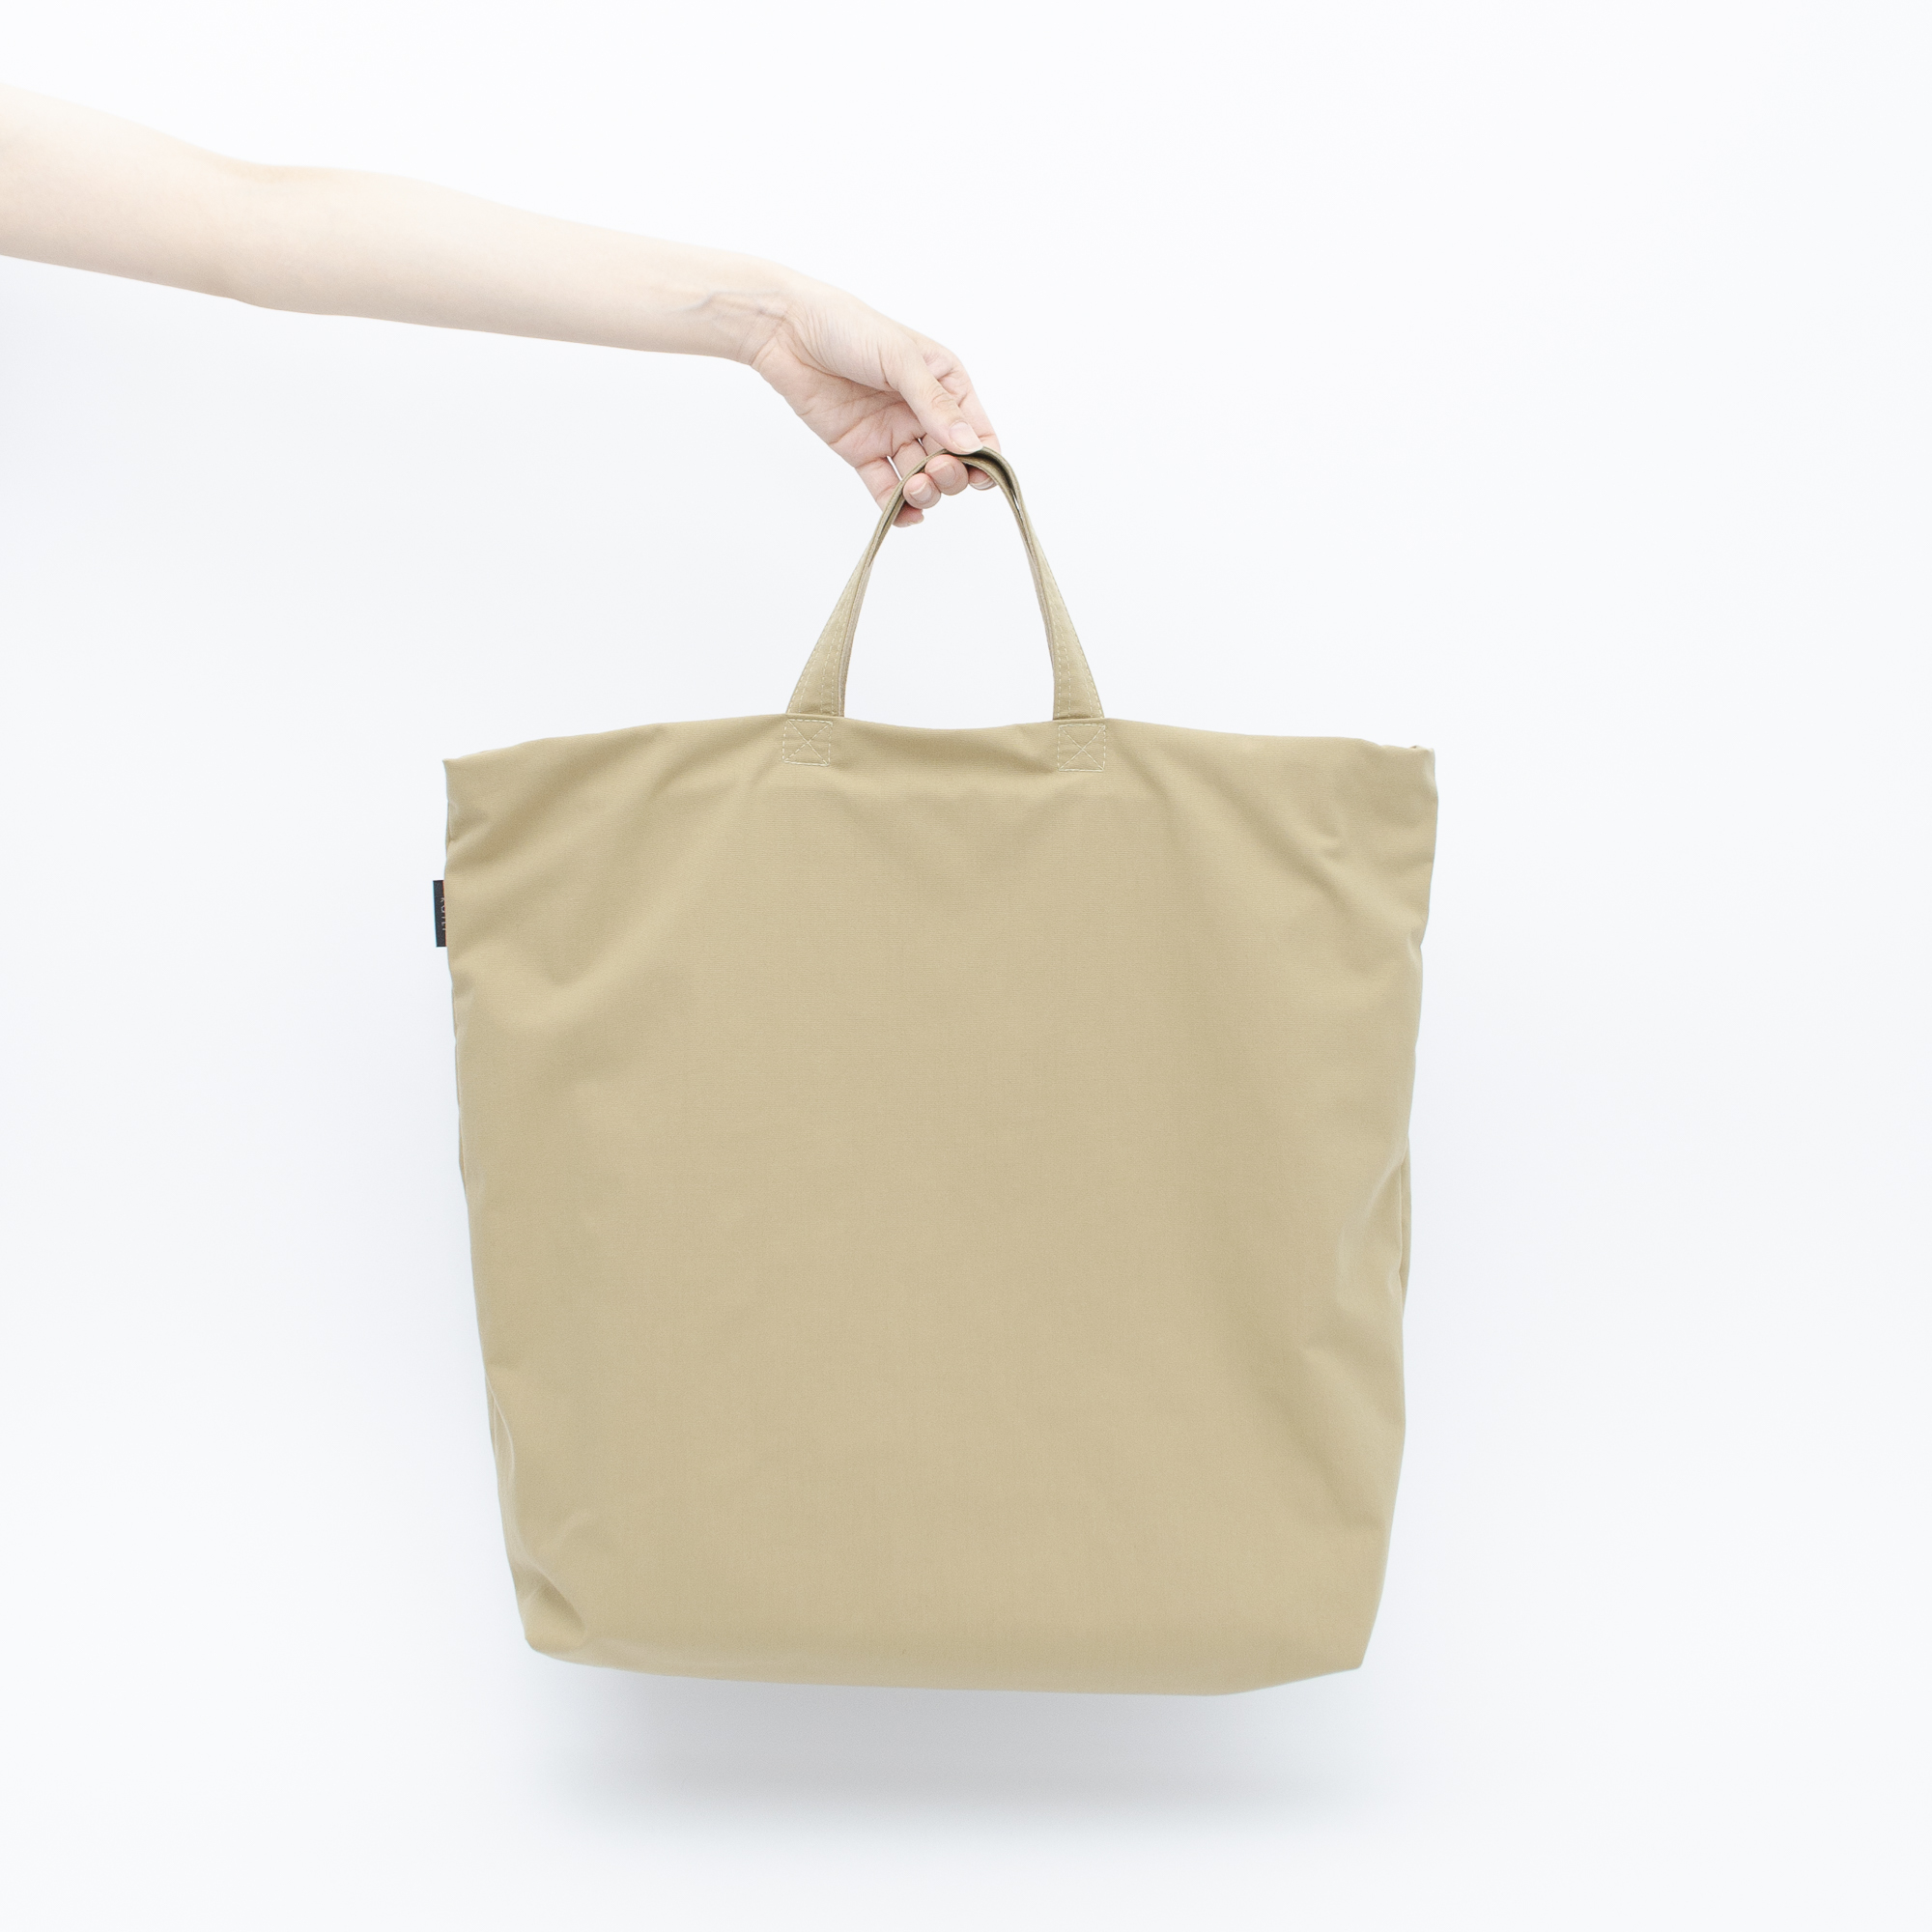 KaILI TWO DEVICE TOTE